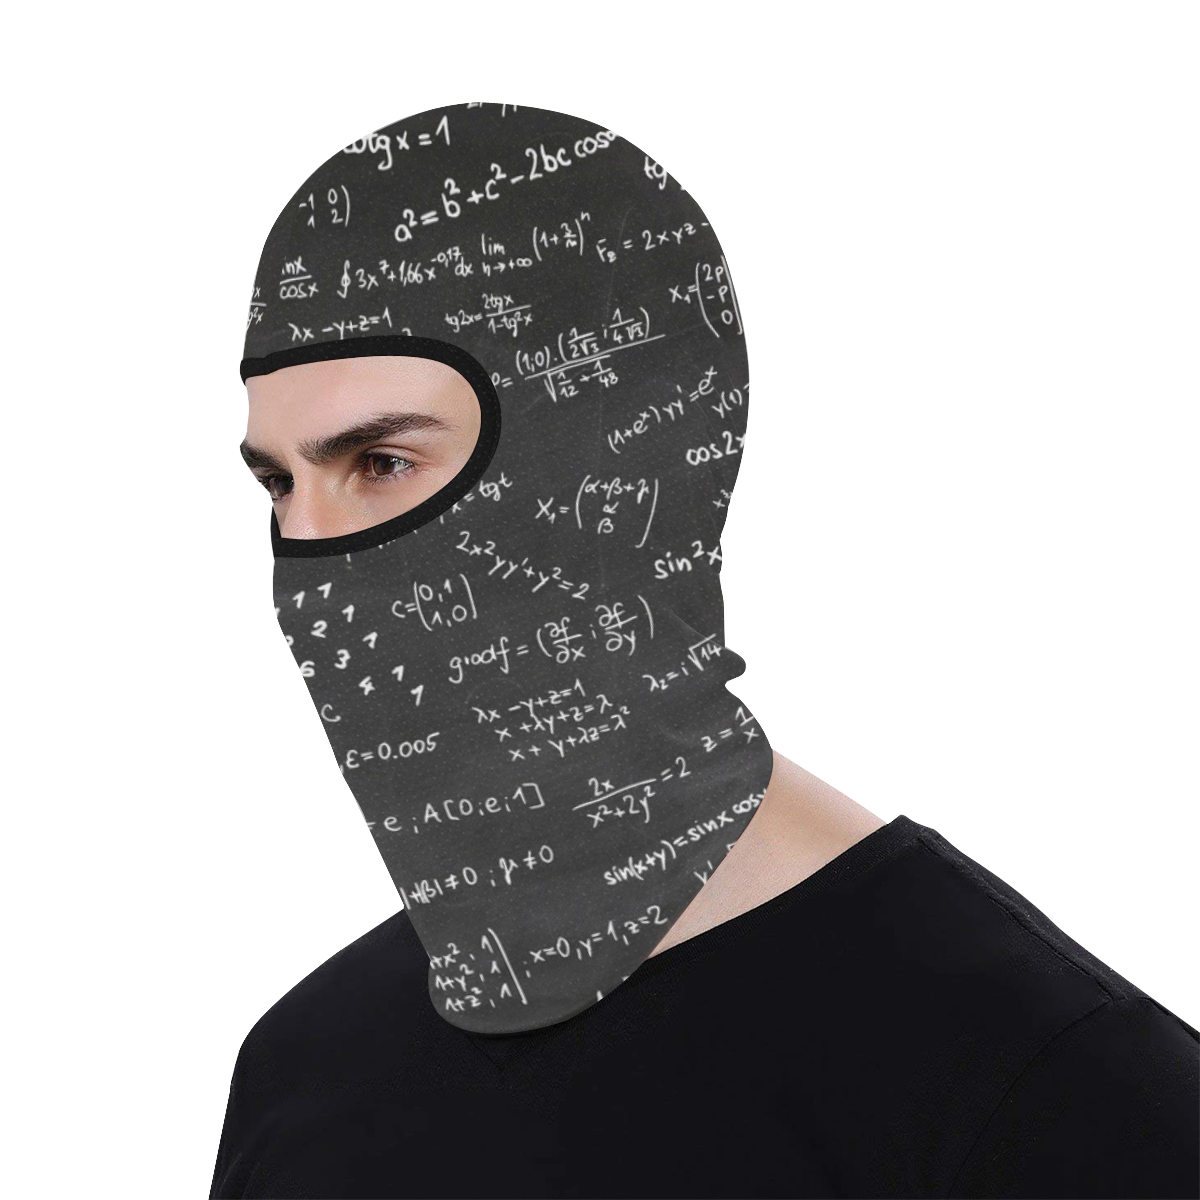 Mathematics Formulas Equations Numbers All Over Print Balaclava